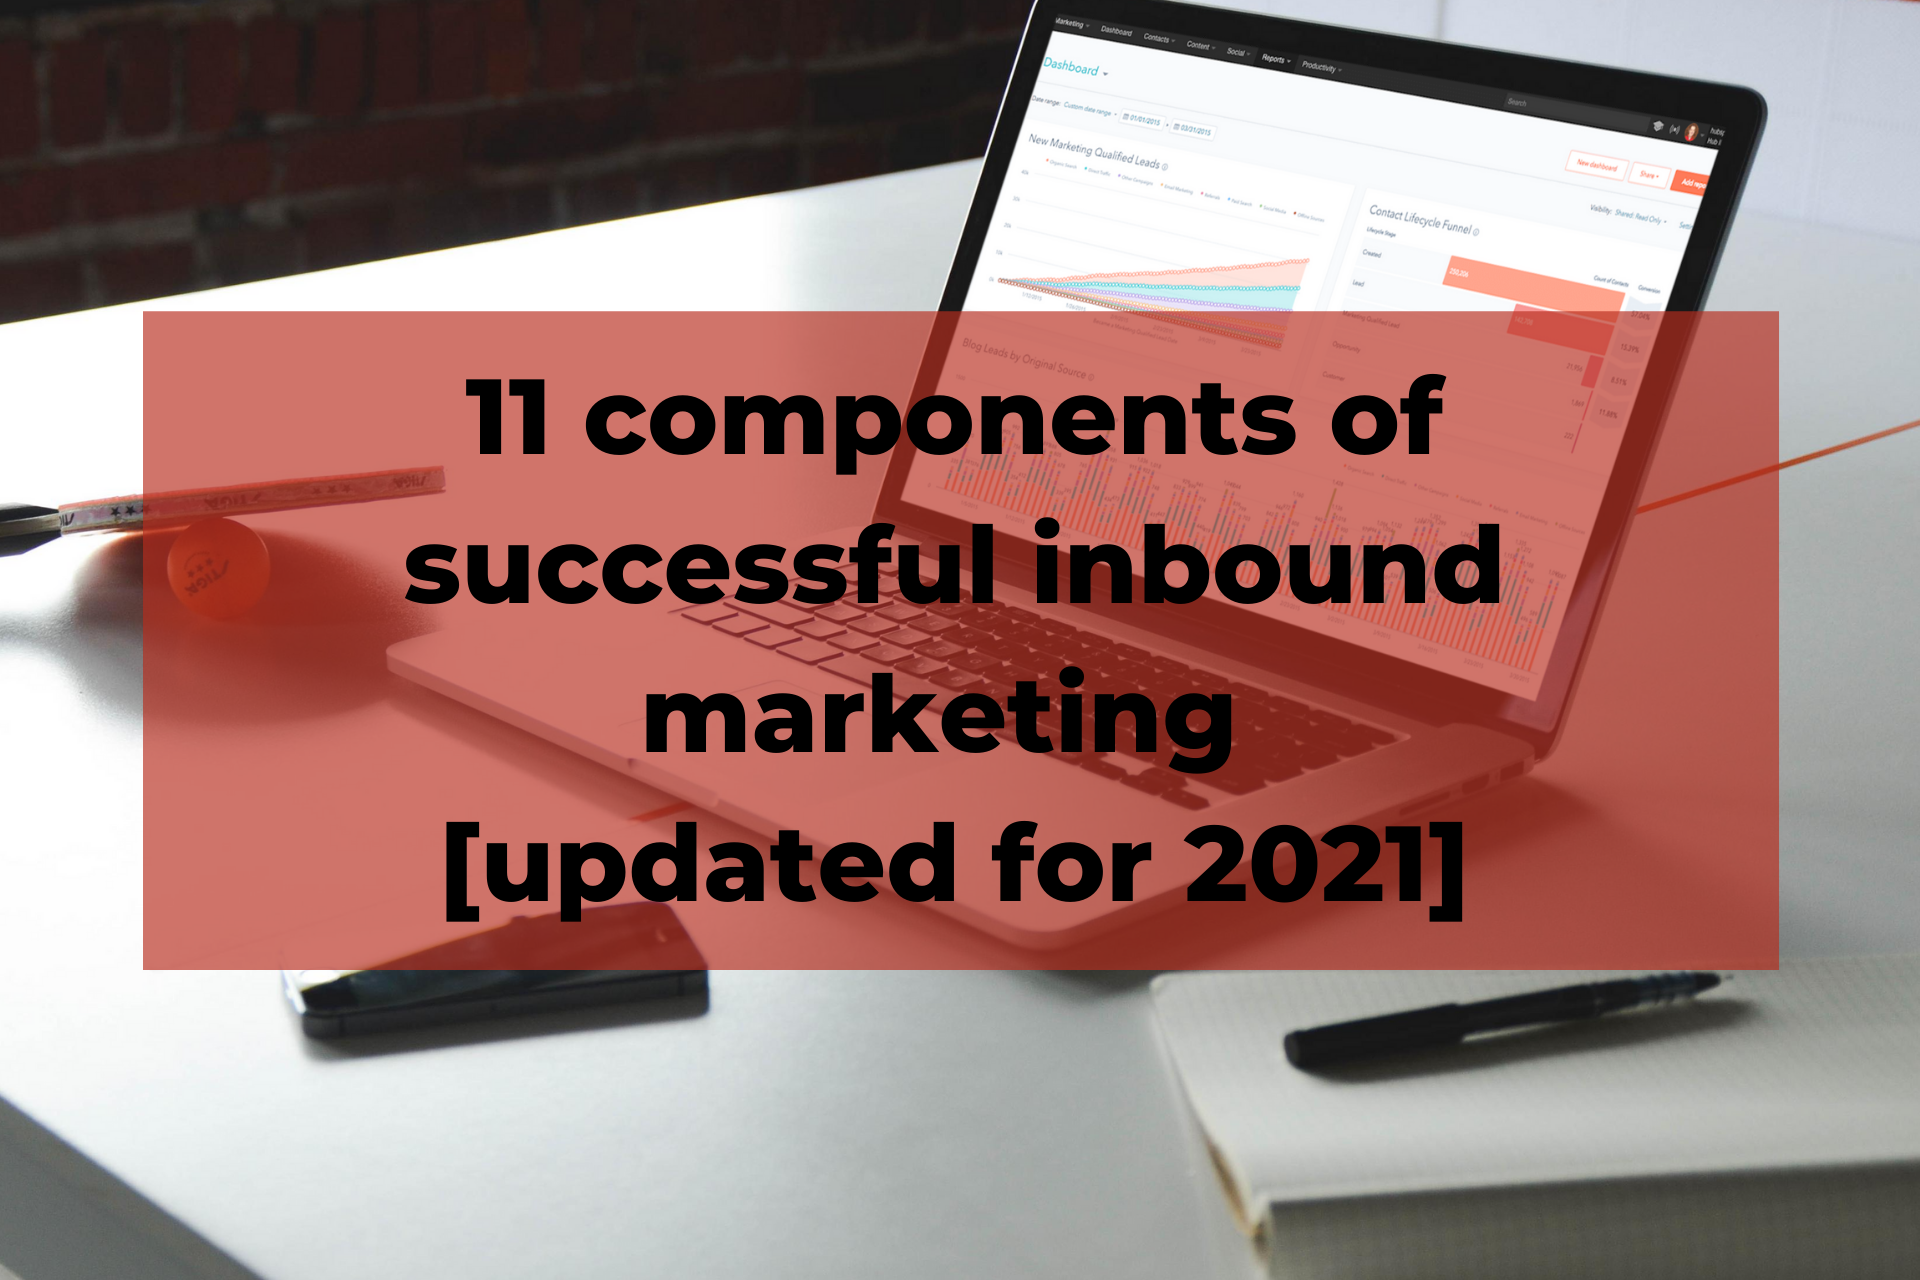 11 components of successful inbound marketing [updated for 2021]